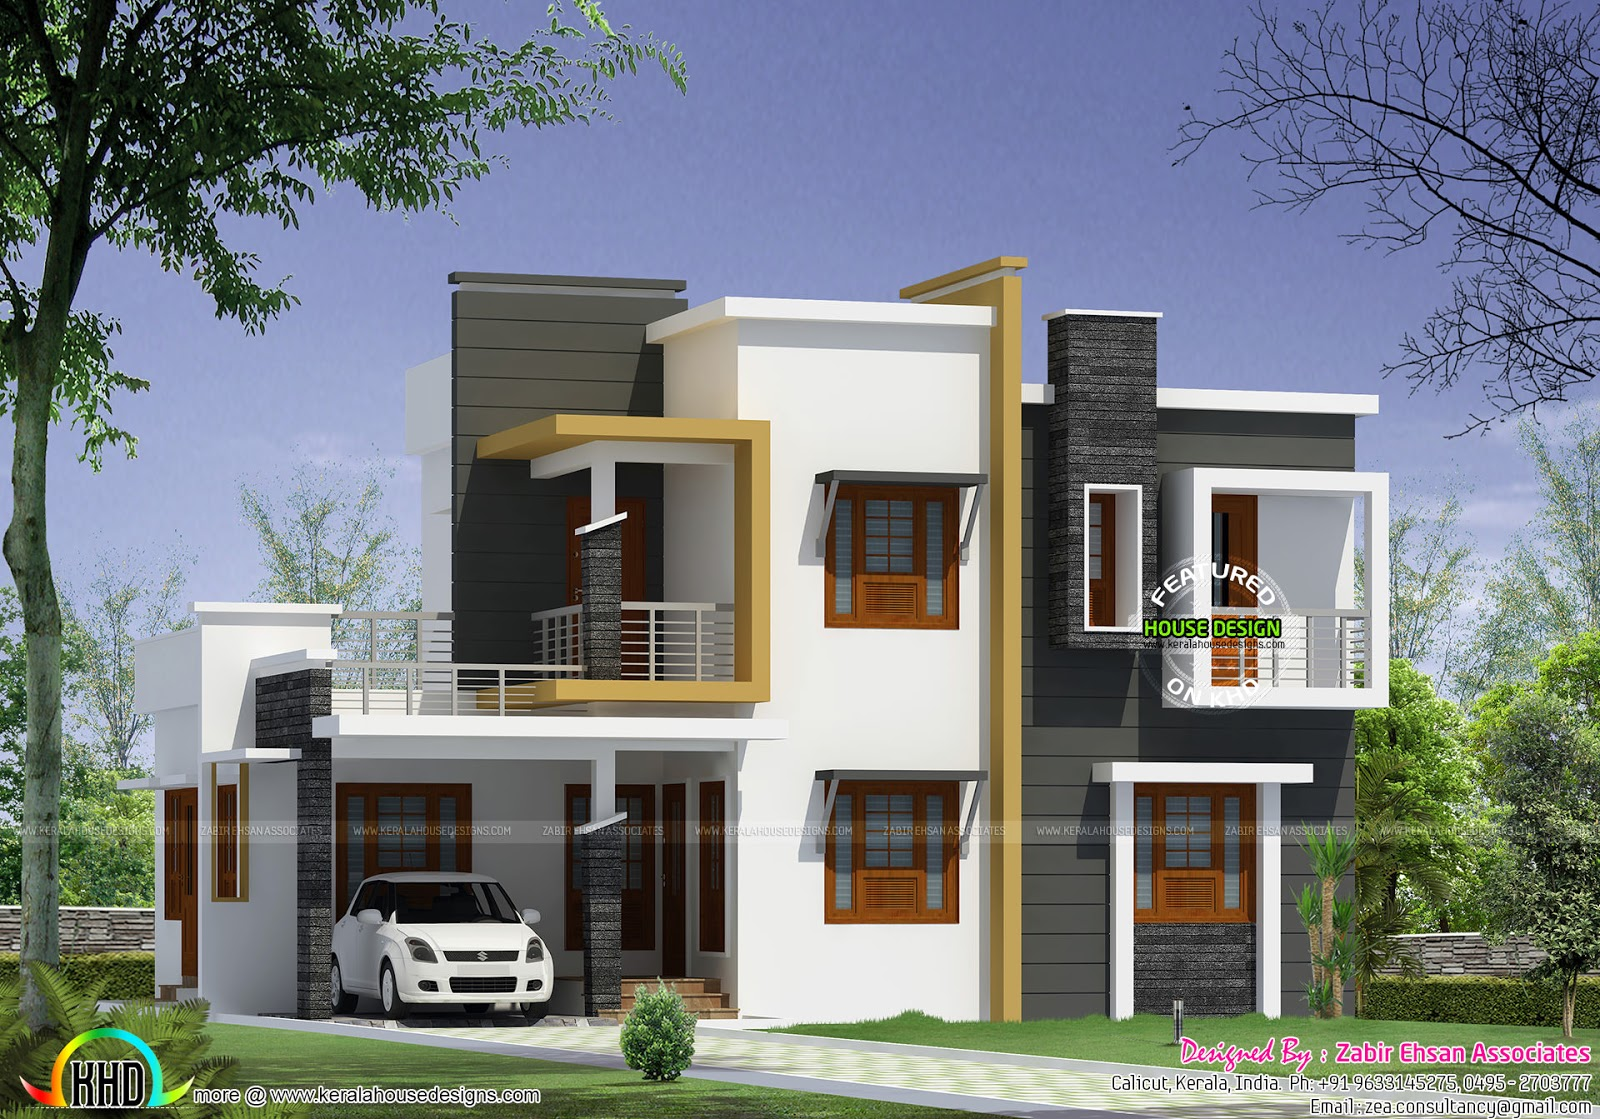 Box type modern house plan kerala home design and floor for Modern floor plans for new homes